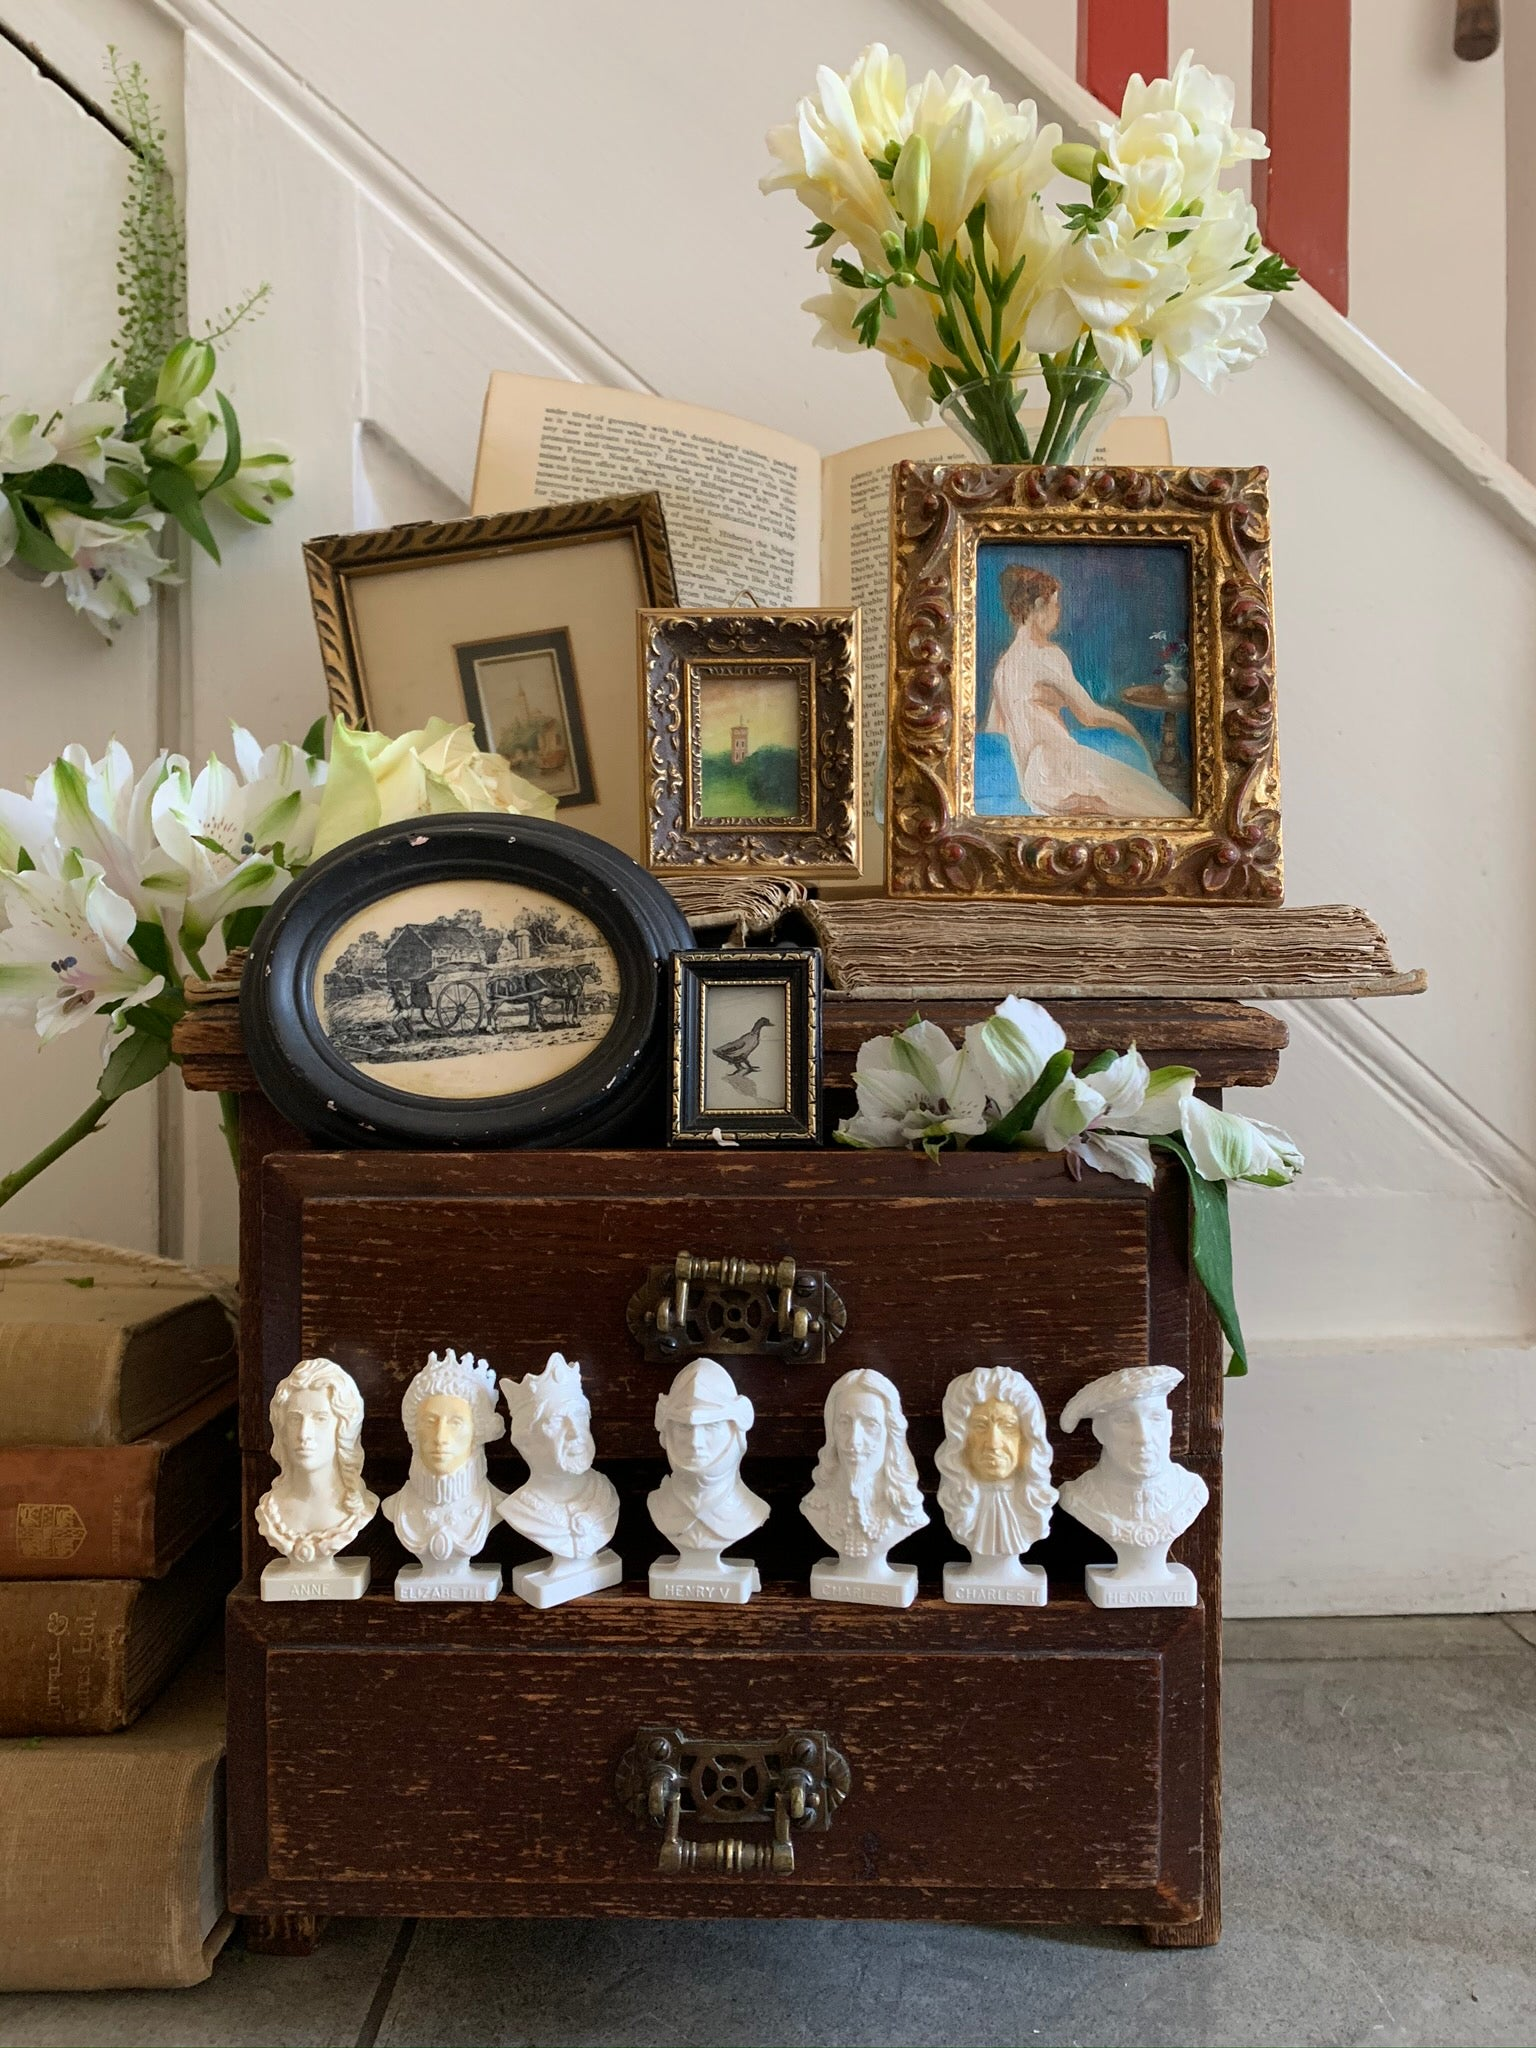 Decorative Antique & Vintage Interiors.